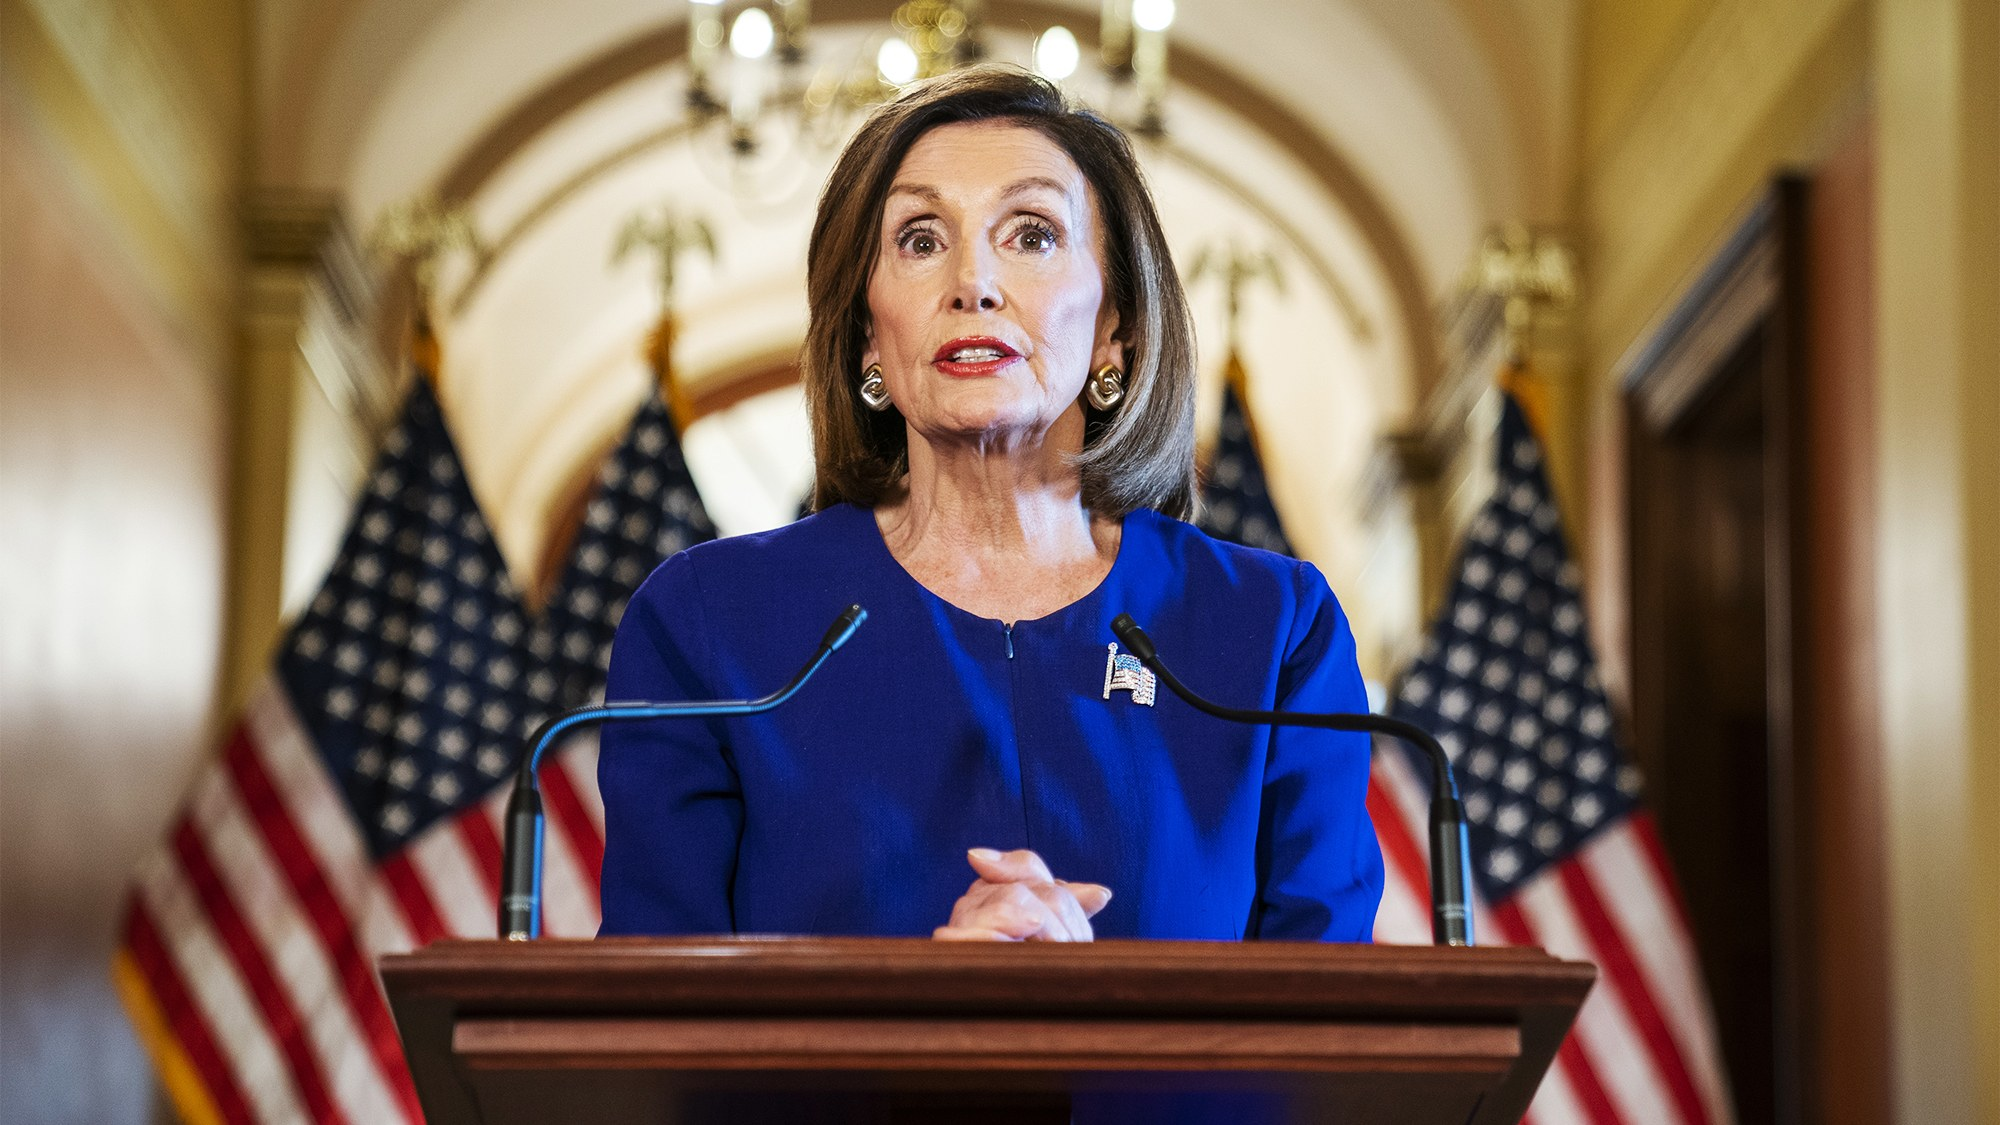 House will draft Trump impeachment articles, Pelosi states that 'our democracy is what is at stake'